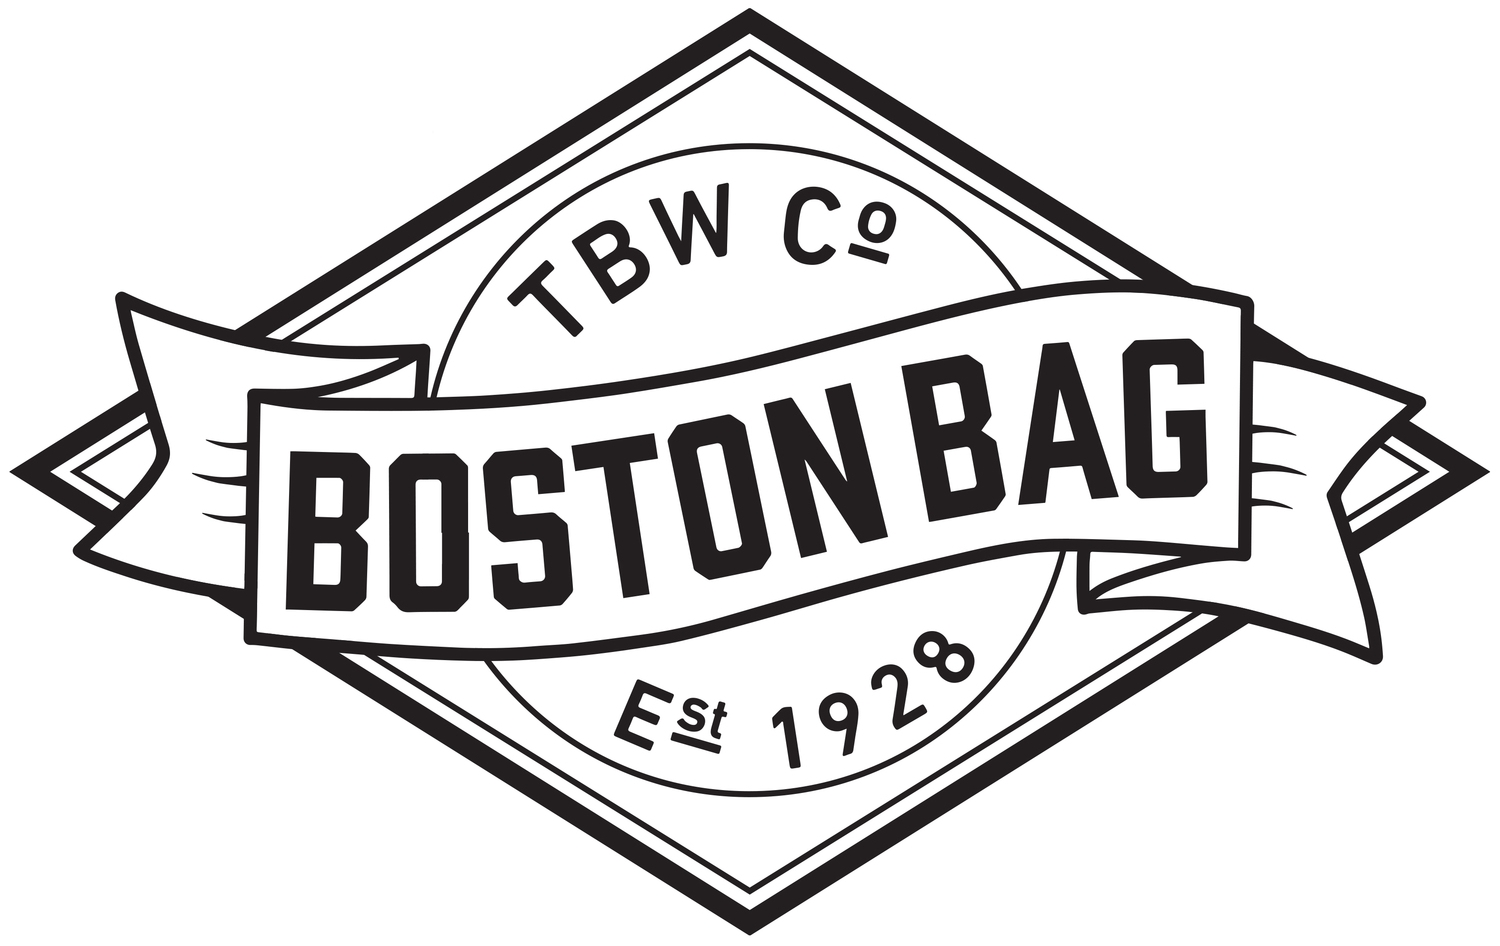 Boston Bag Co.